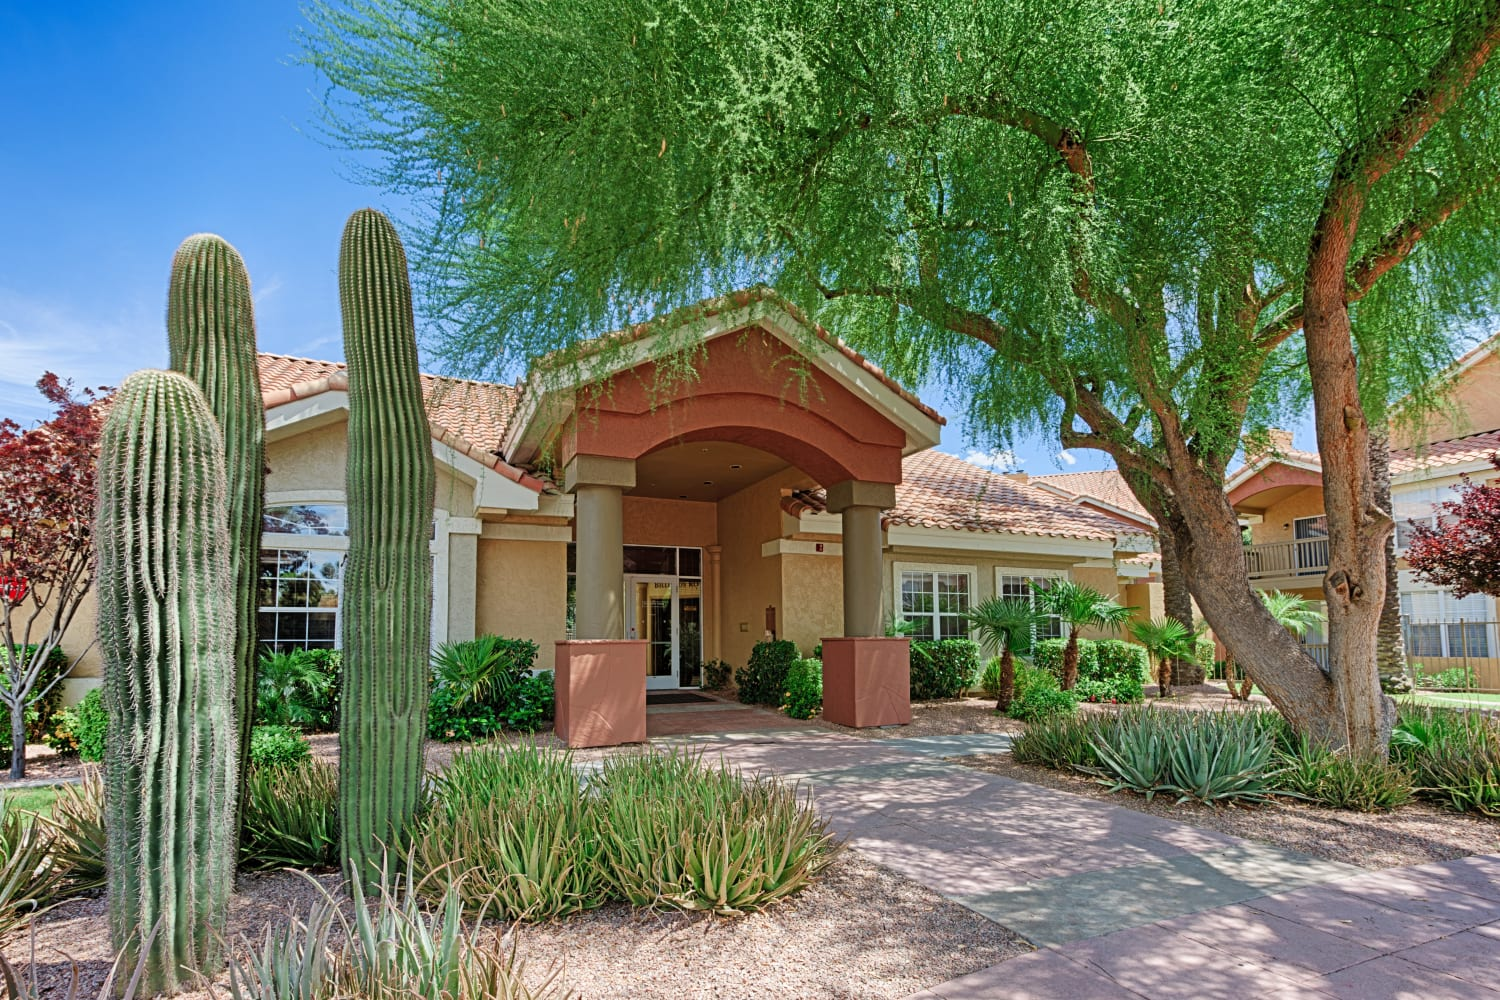 Sonoran Vista Apartments in Scottsdale, Arizona, offer lovely desert landscapes